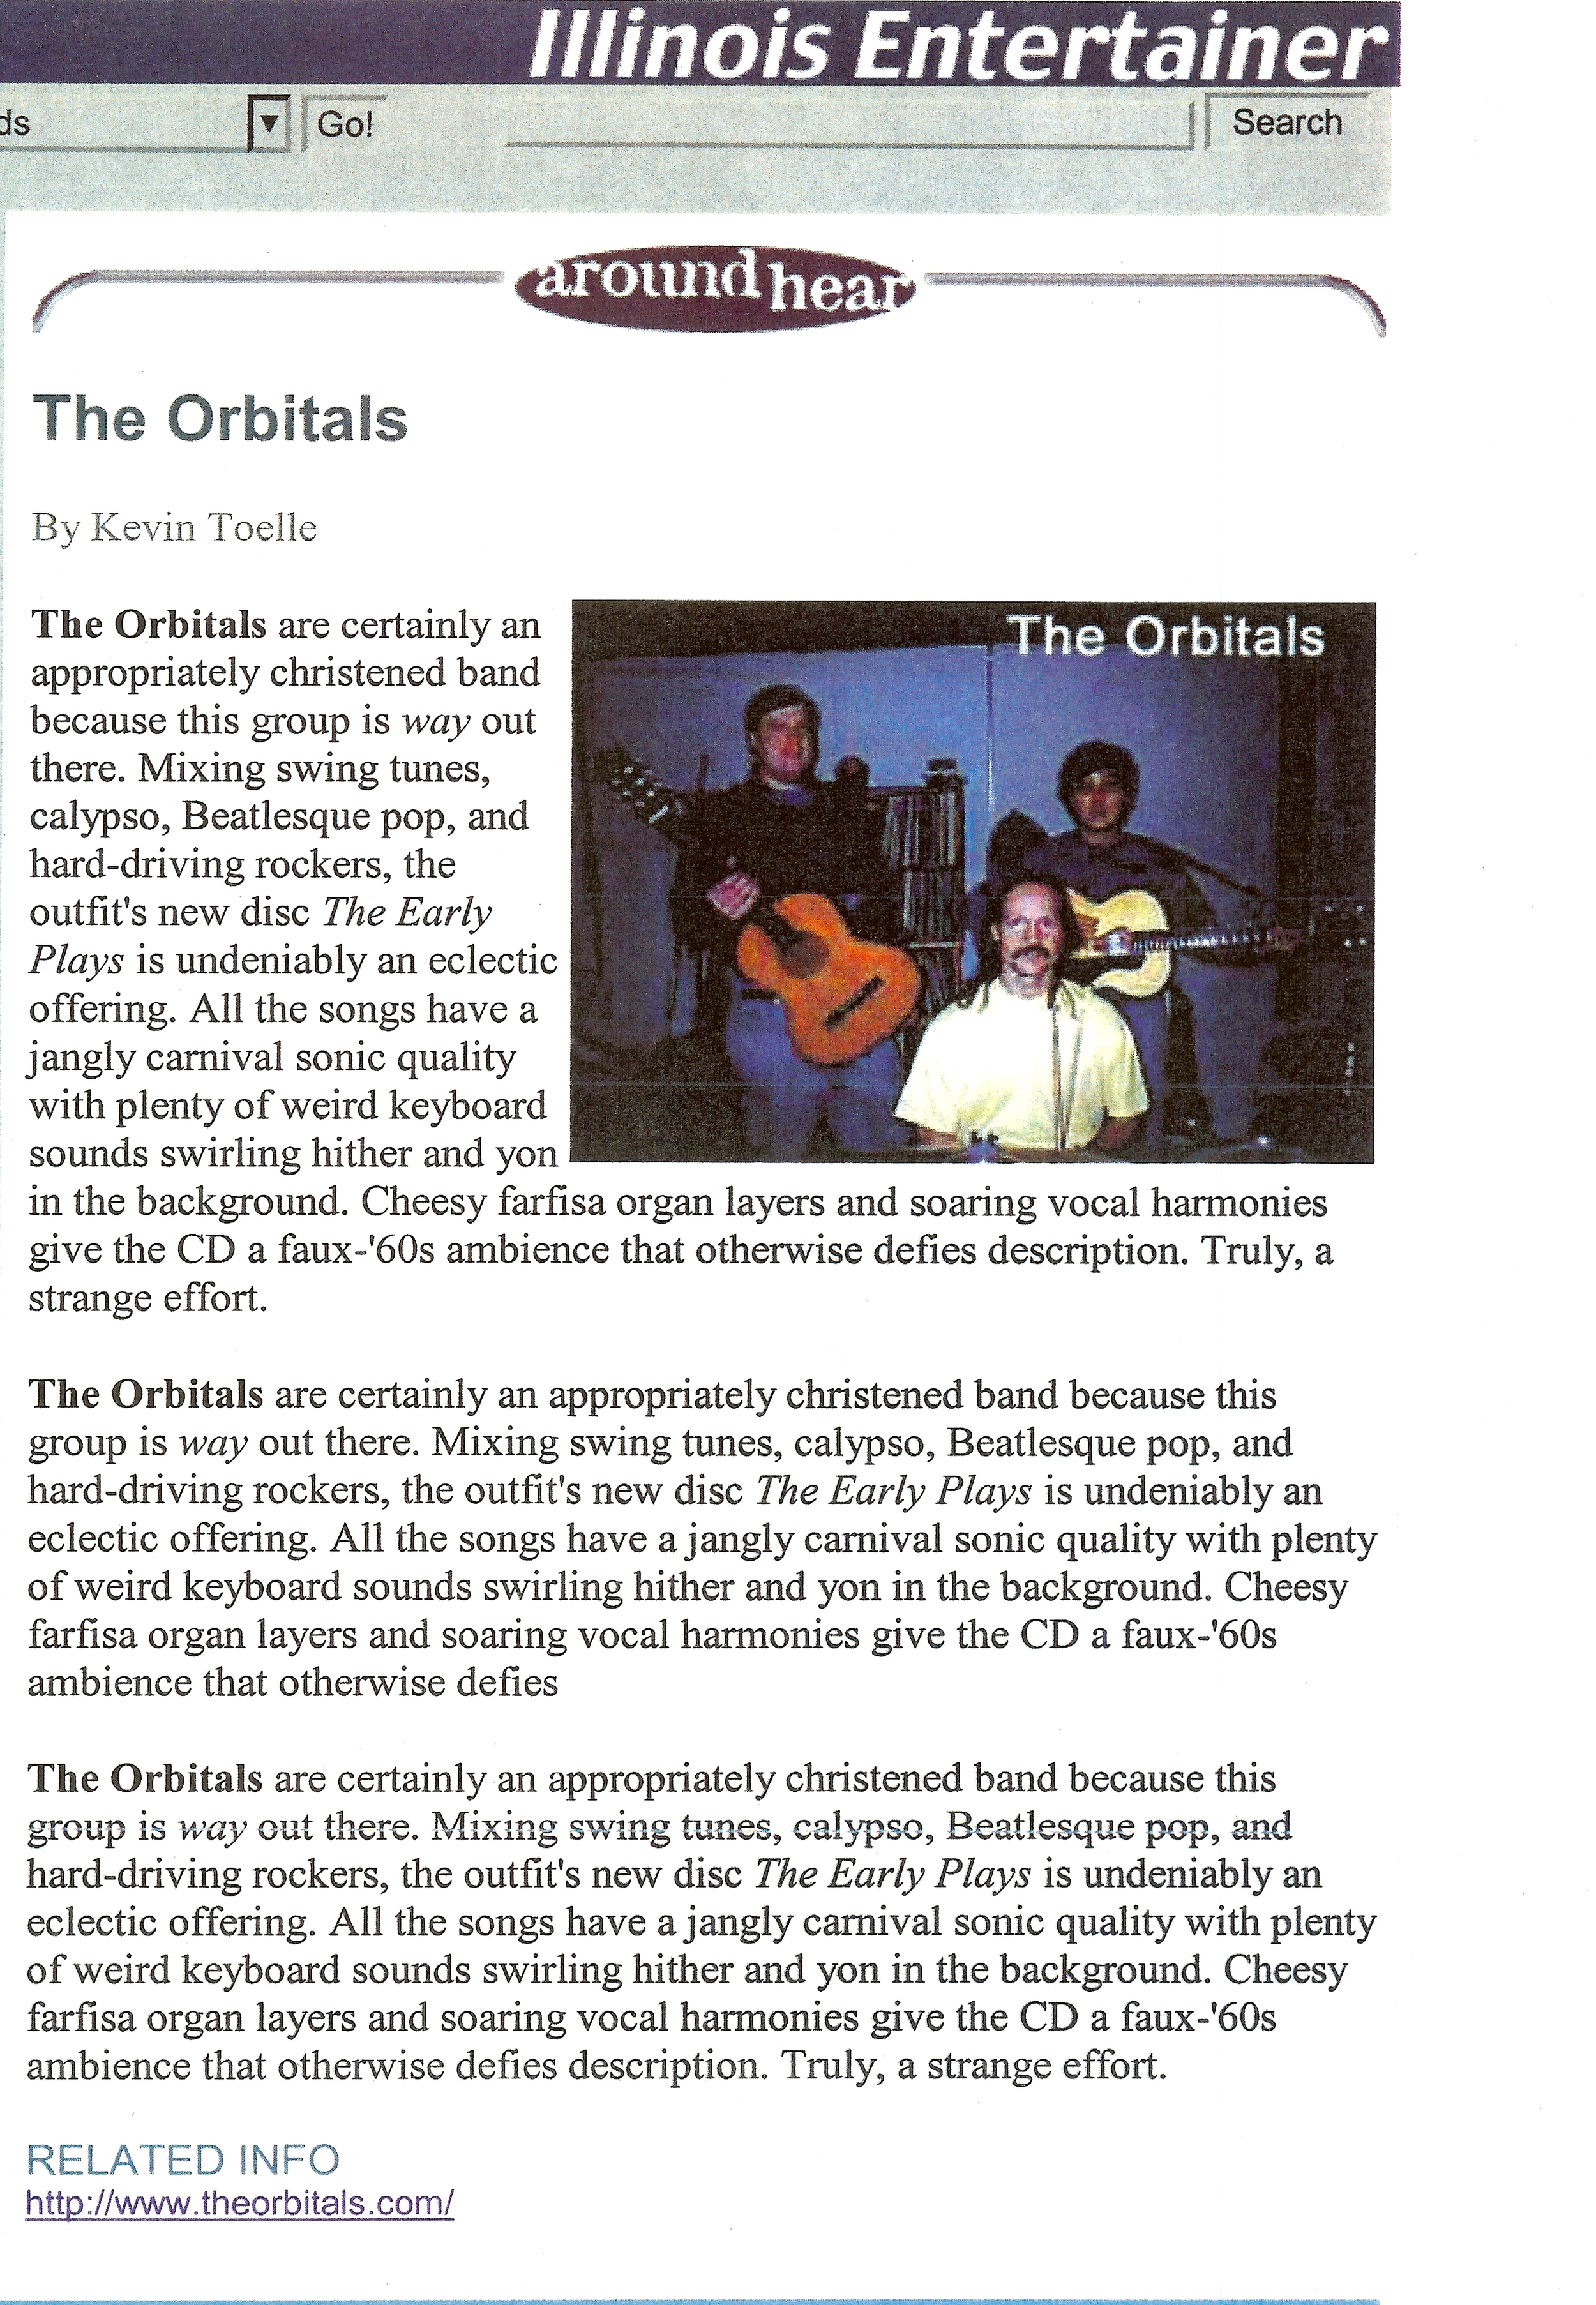 Illinois Entertainer review of The Early Plays by The Orbitals